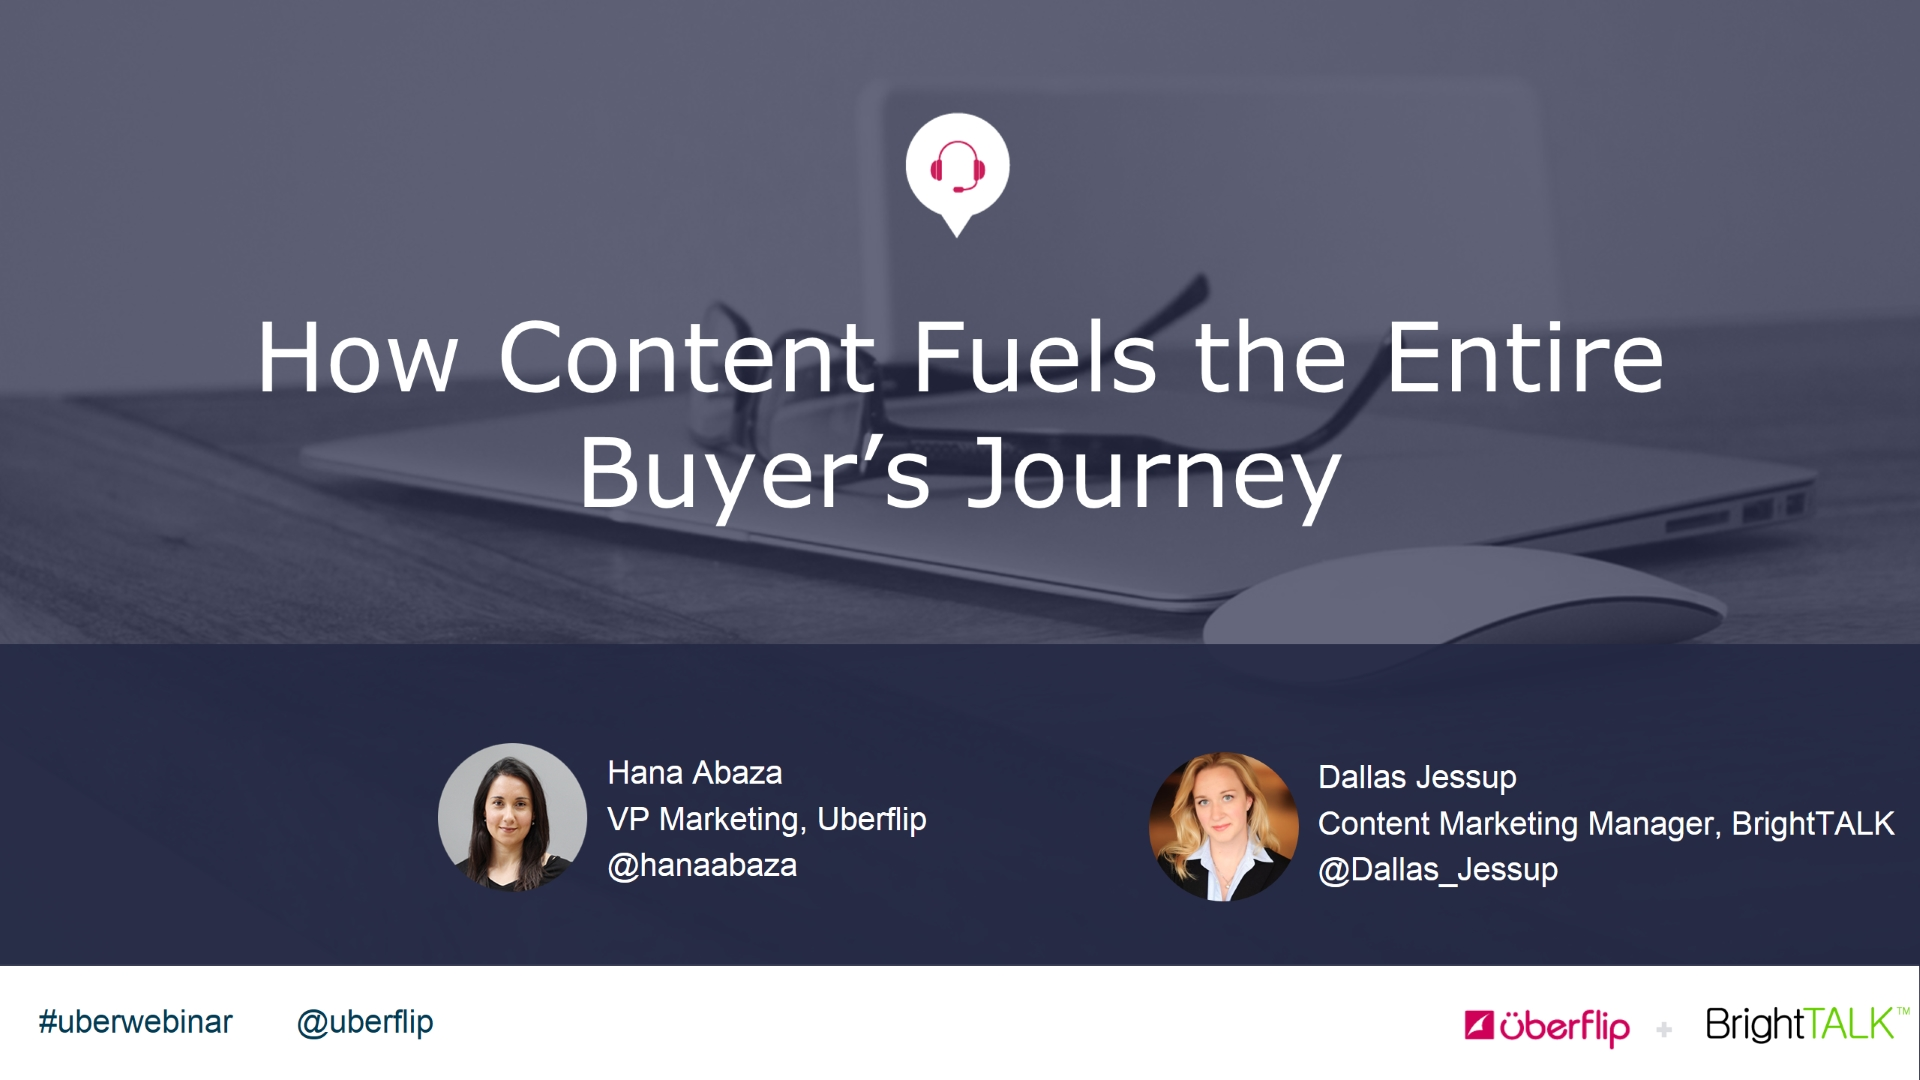 how content fuels the entire buyer's journey